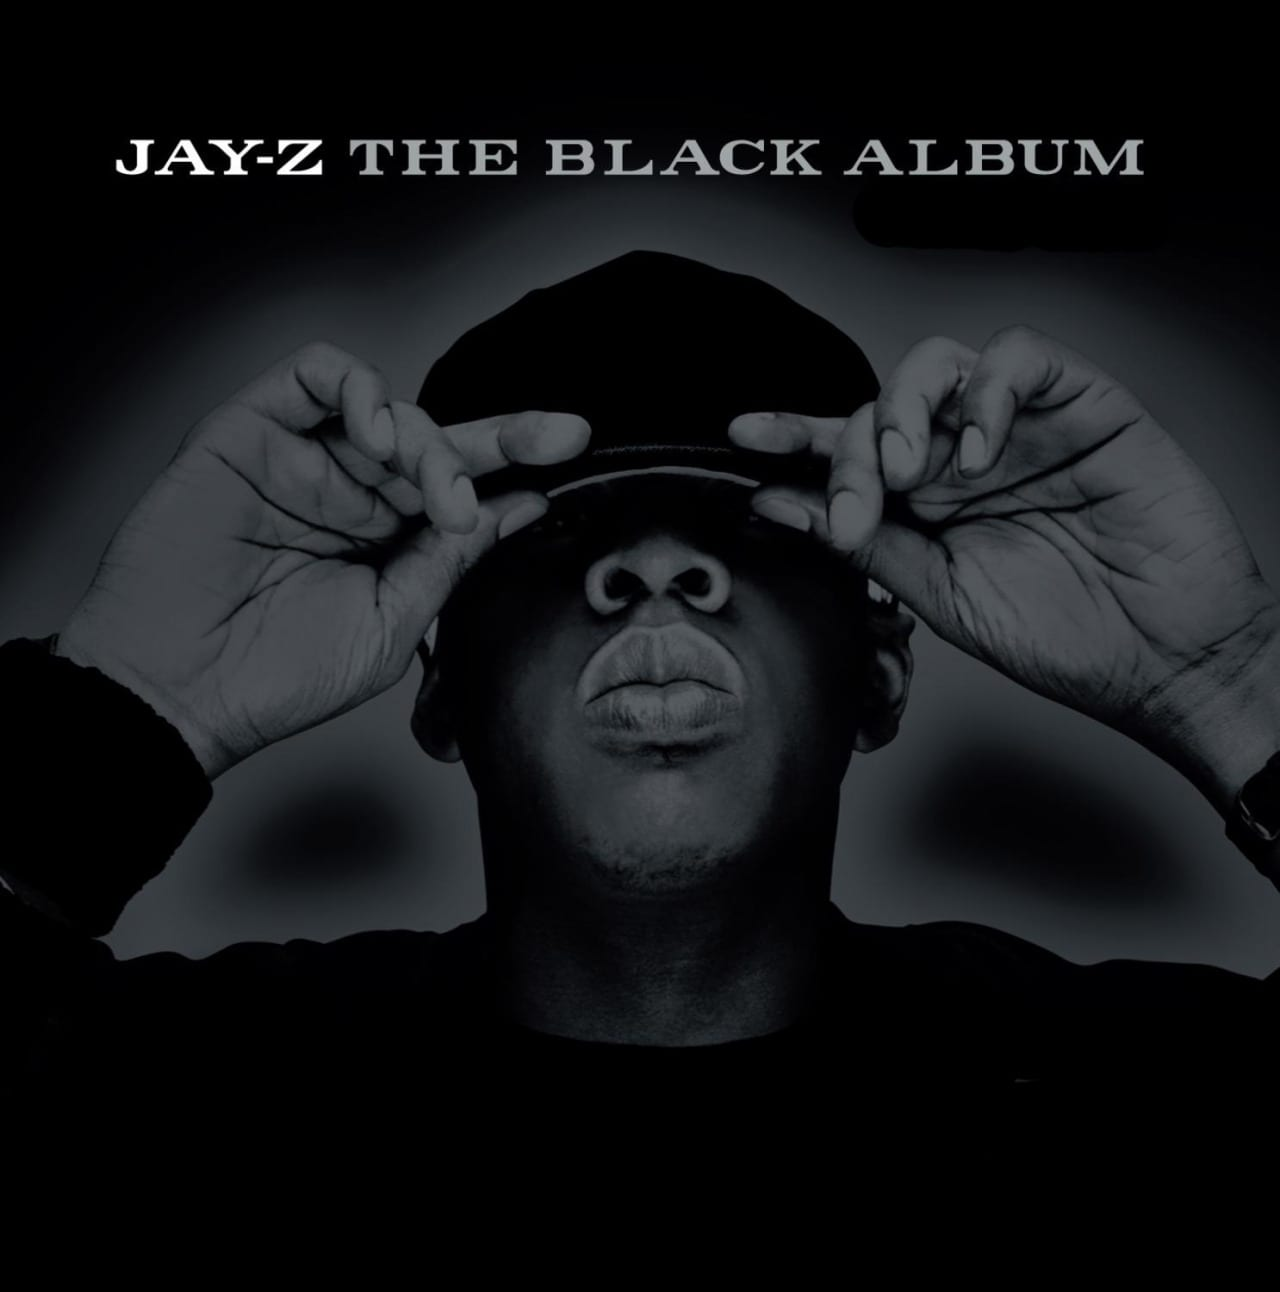 Today in Hip-Hop History: JAY-Z Dropped 'The Black Album' 16 Years Ago